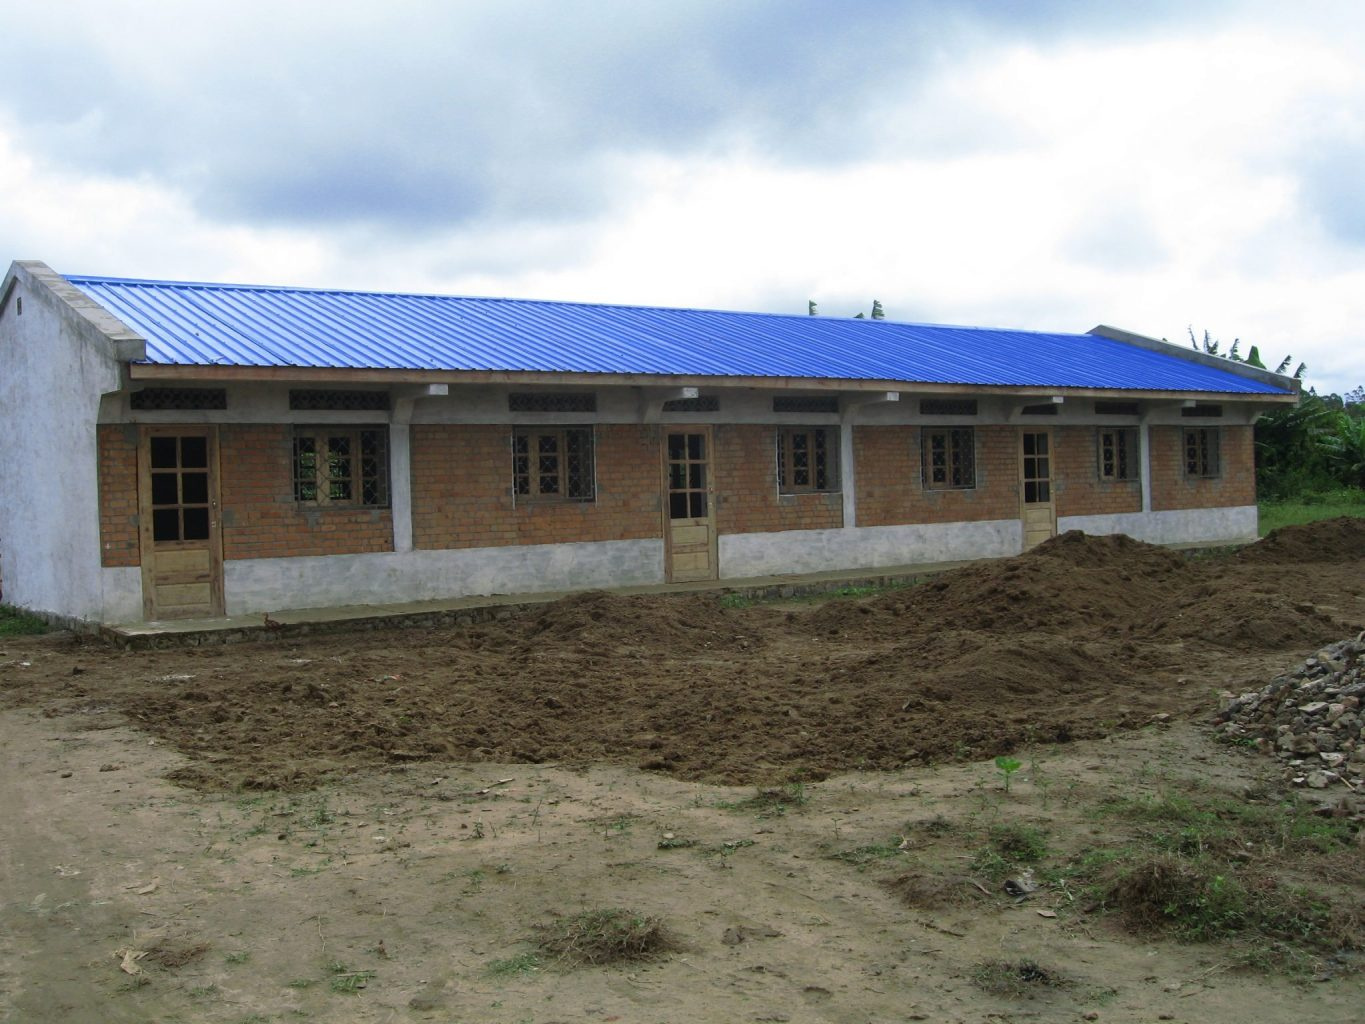 Sahafitana School as it stands